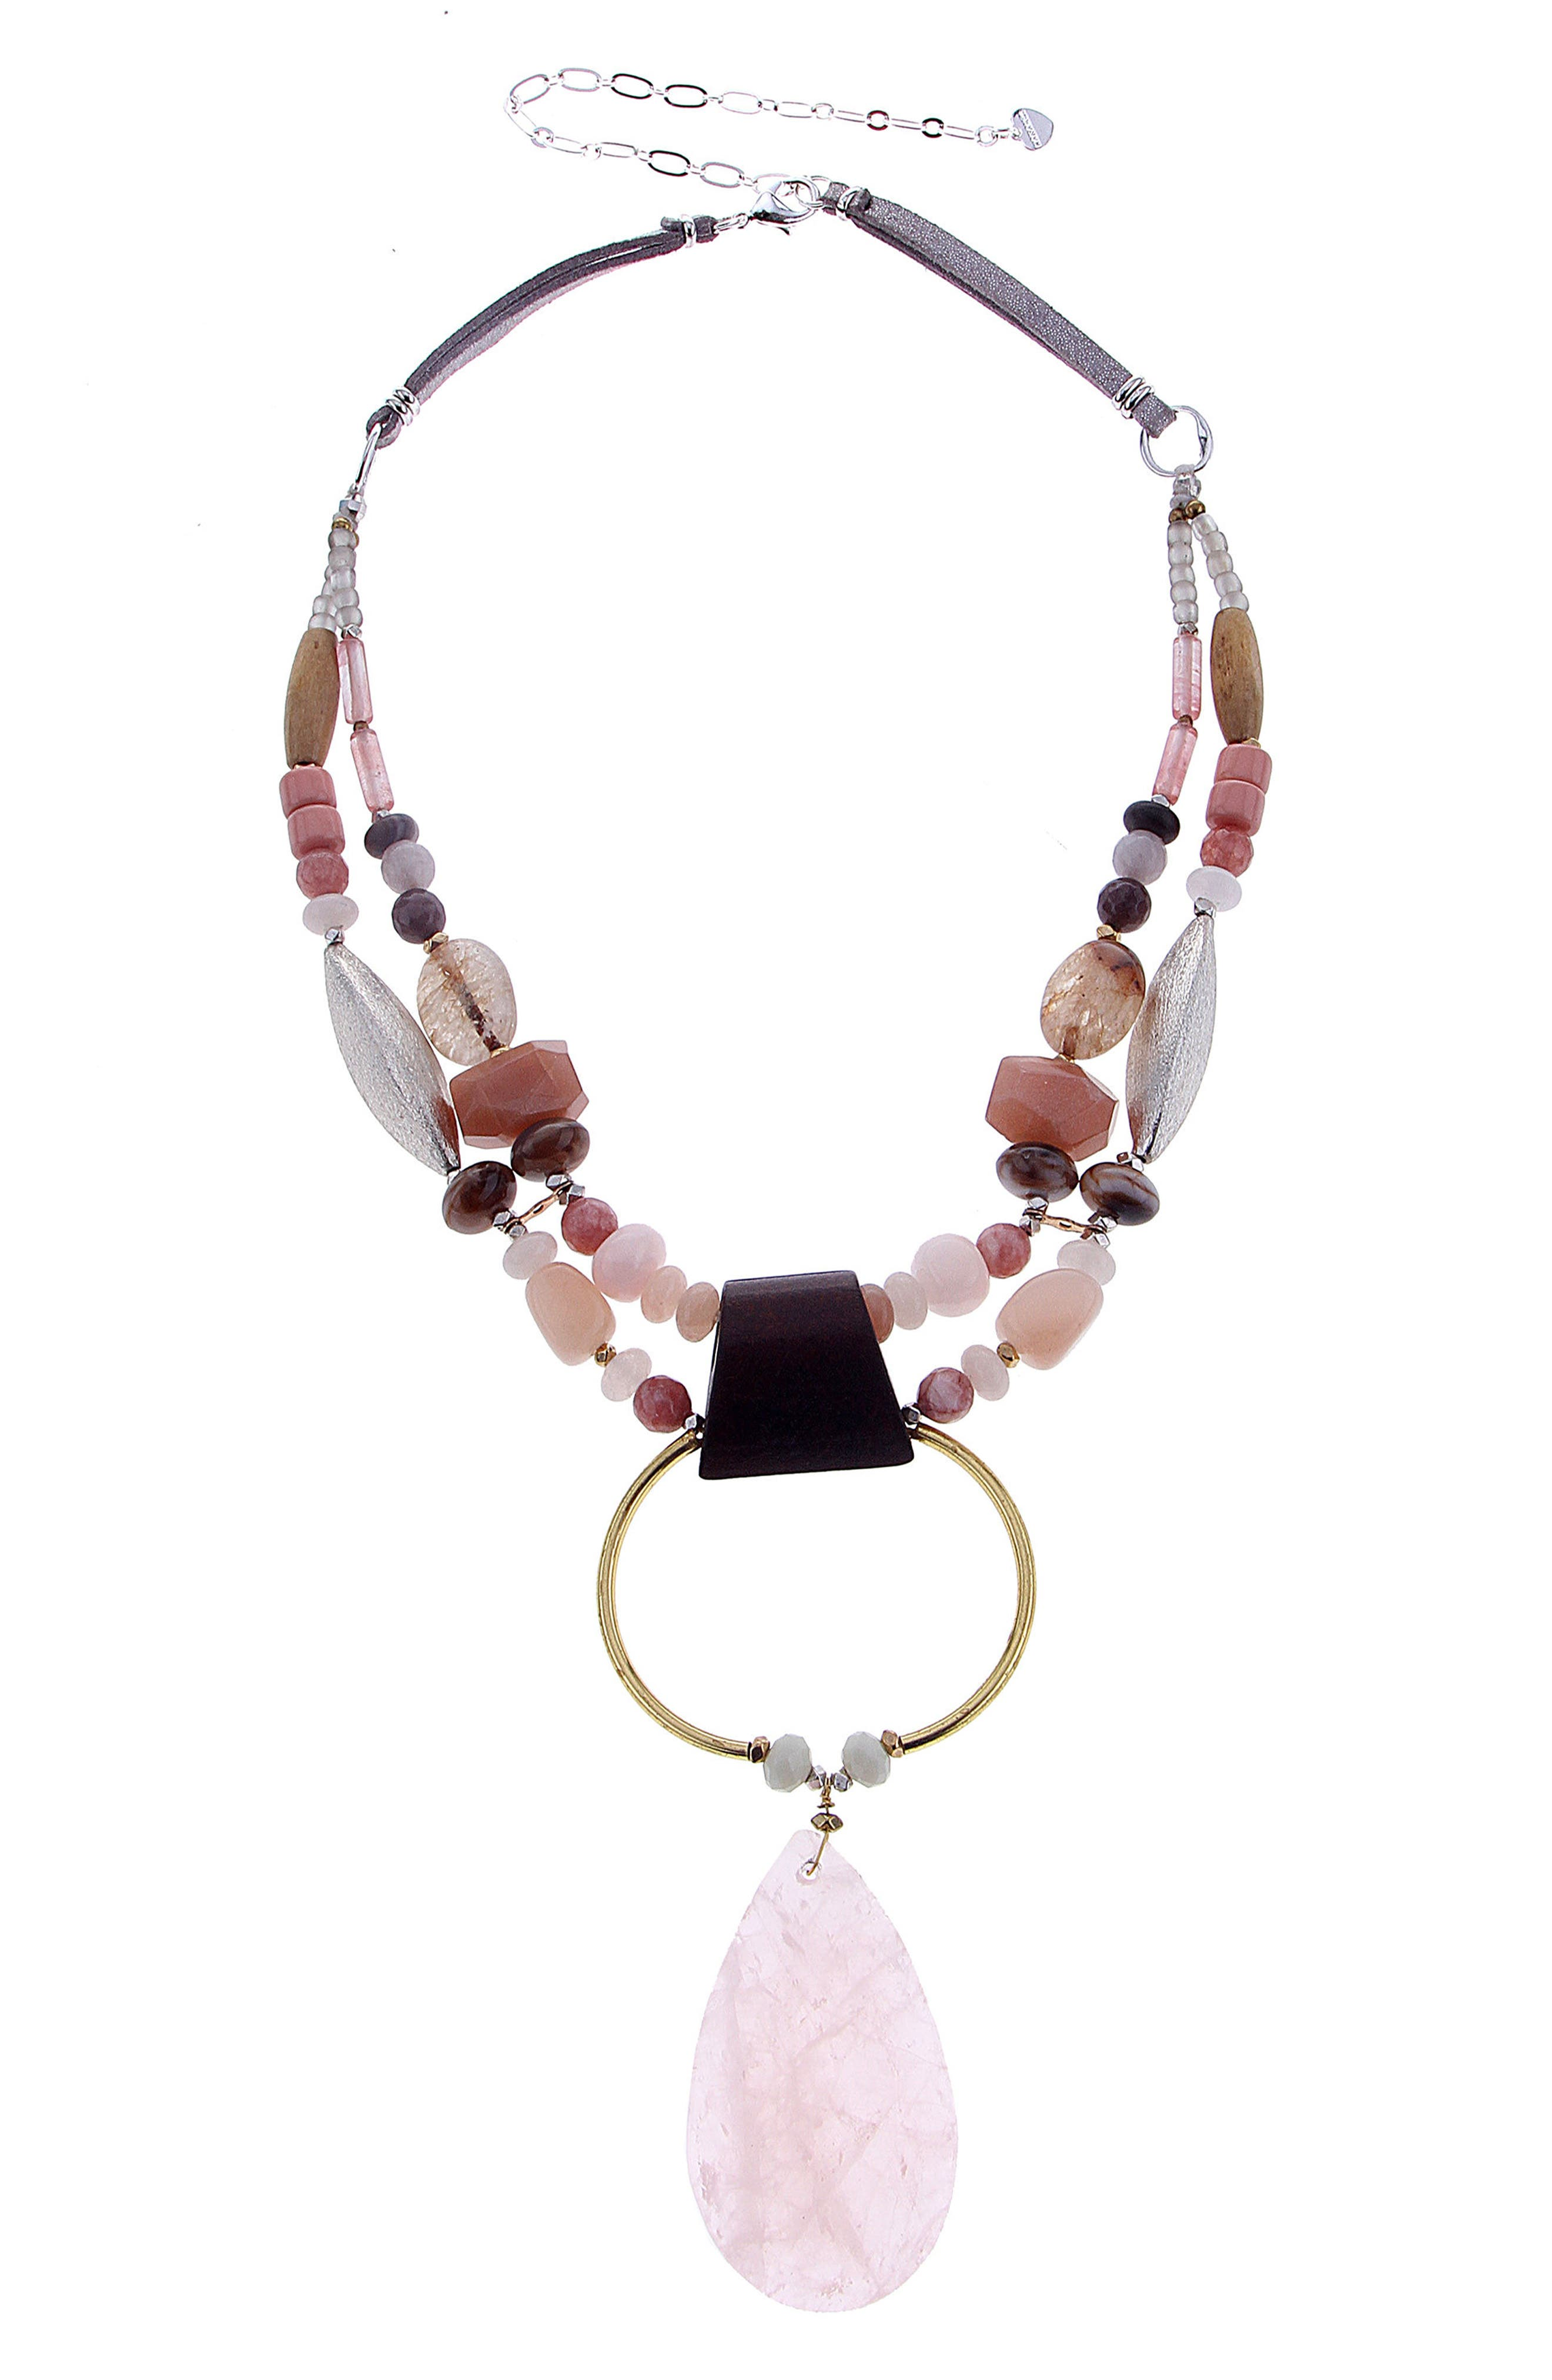 Nakamol Design Stone Pendant Necklace